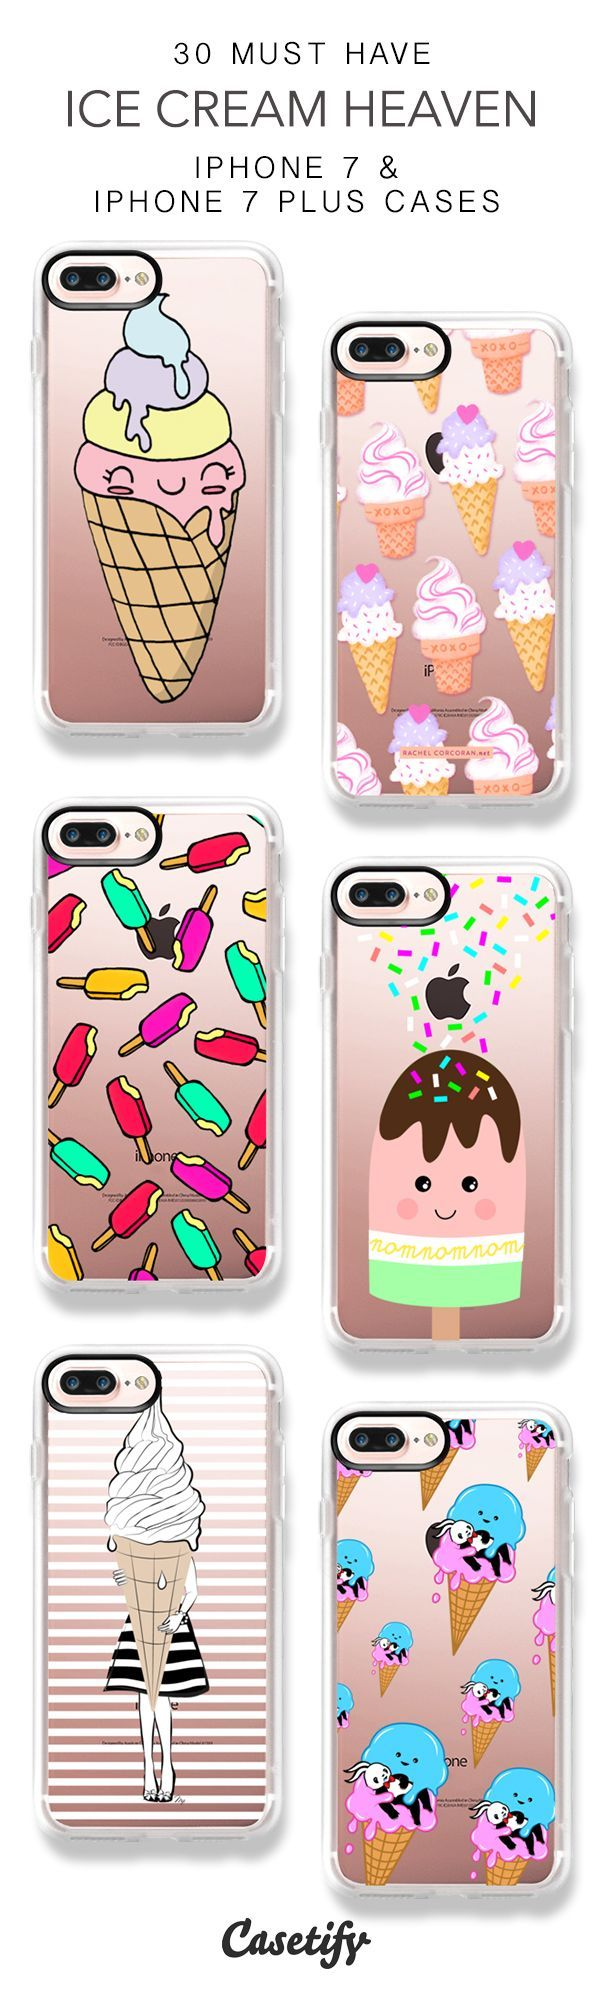 30 Must Have Ice Cream Heaven iPhone 7 Cases and iPhone 7 Plus Cases. More Food iPhone case here > https://www.casetify.com/collections/top_100_designs#/?vc=a3lmwrM49w #iphonead,